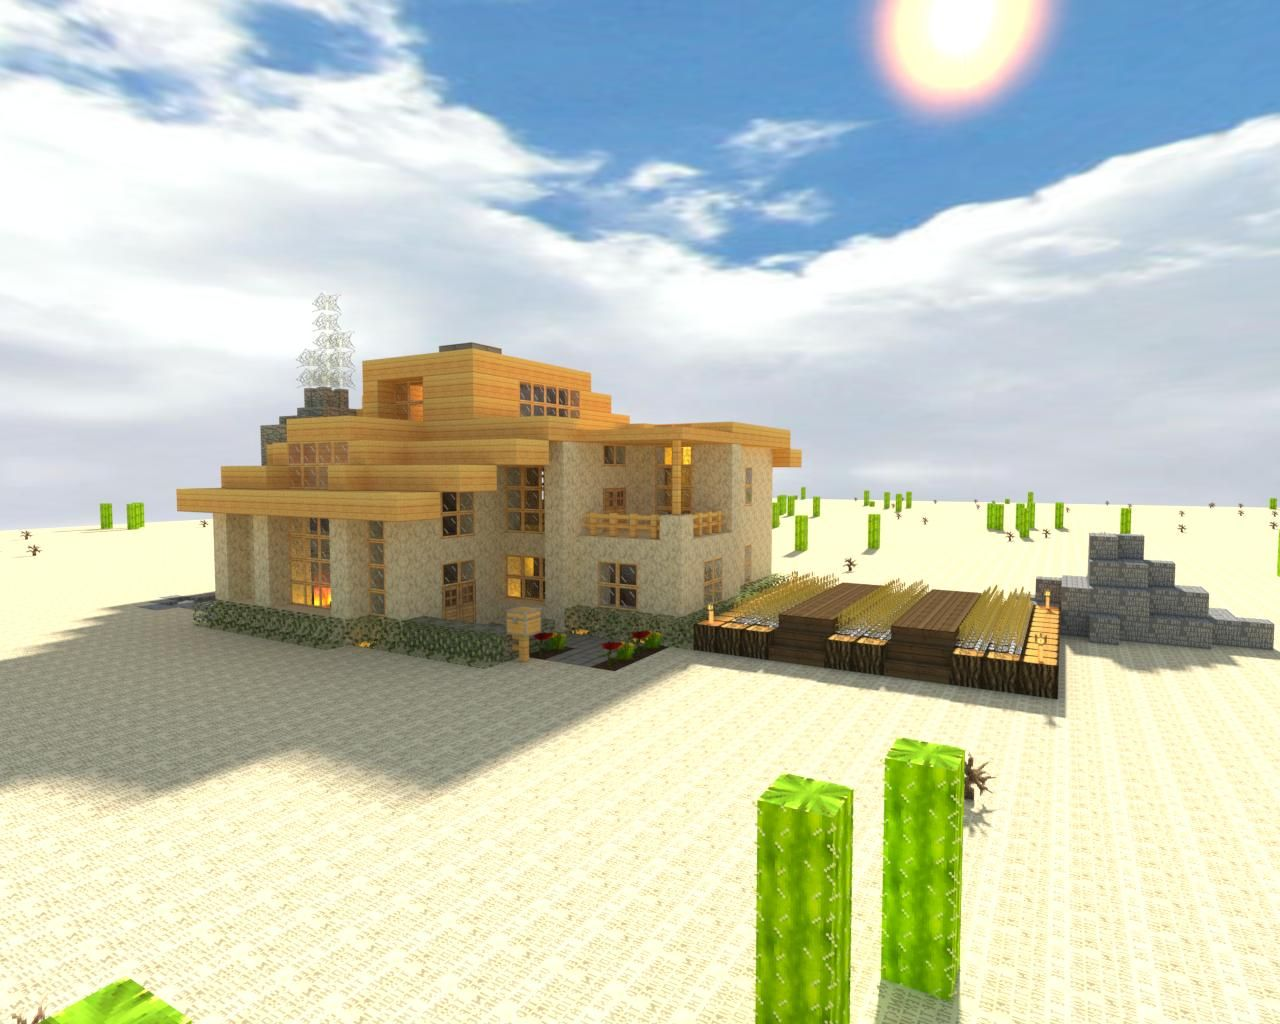 719 best minecraft houses buildings images on pinterest minecraft